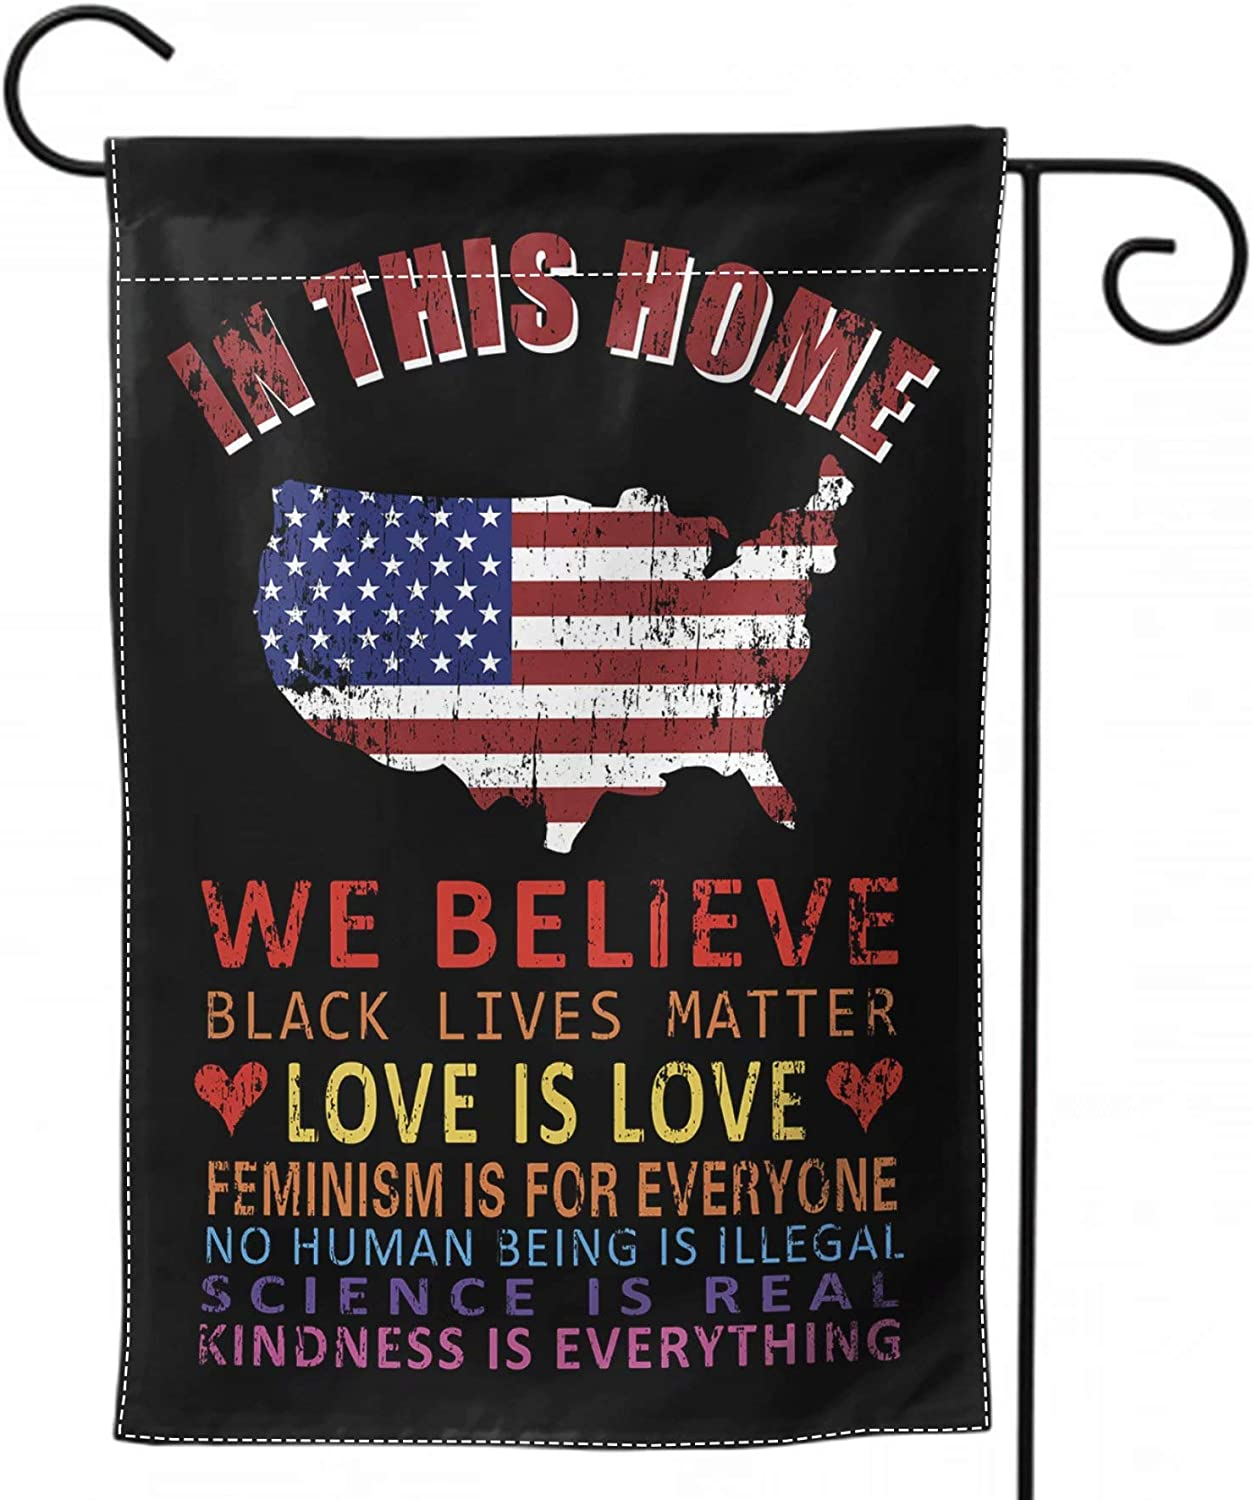 DZGlobal in This Home We Believe Yard Flag BLM Flag 12 x 18 All Lives Matter Flag Protest Signs Flag Double Sided Equality Flag for Outdoor Patio Decor Small